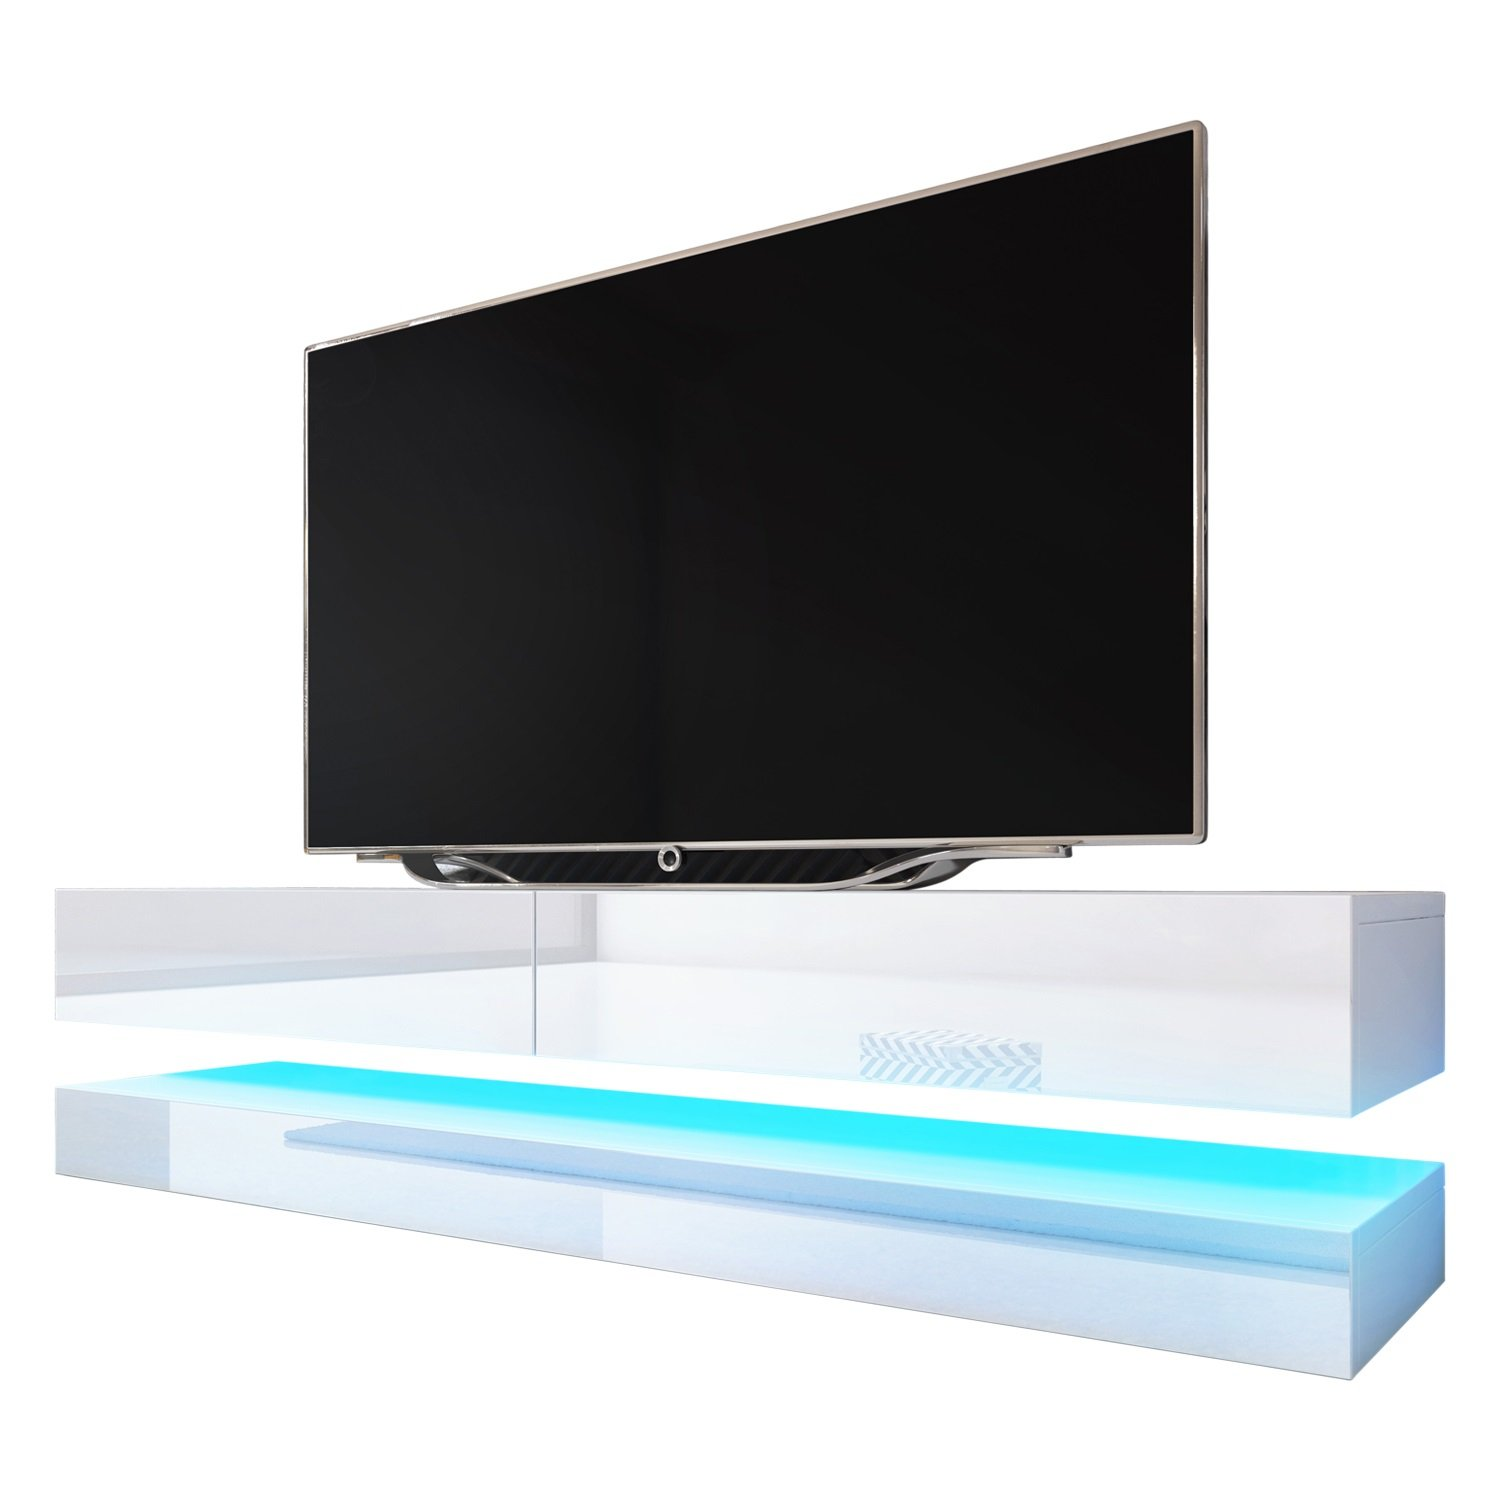 Fly Wall Mounted Floating TV Stands16 colors LED Fits 60'' TV (WHITE)